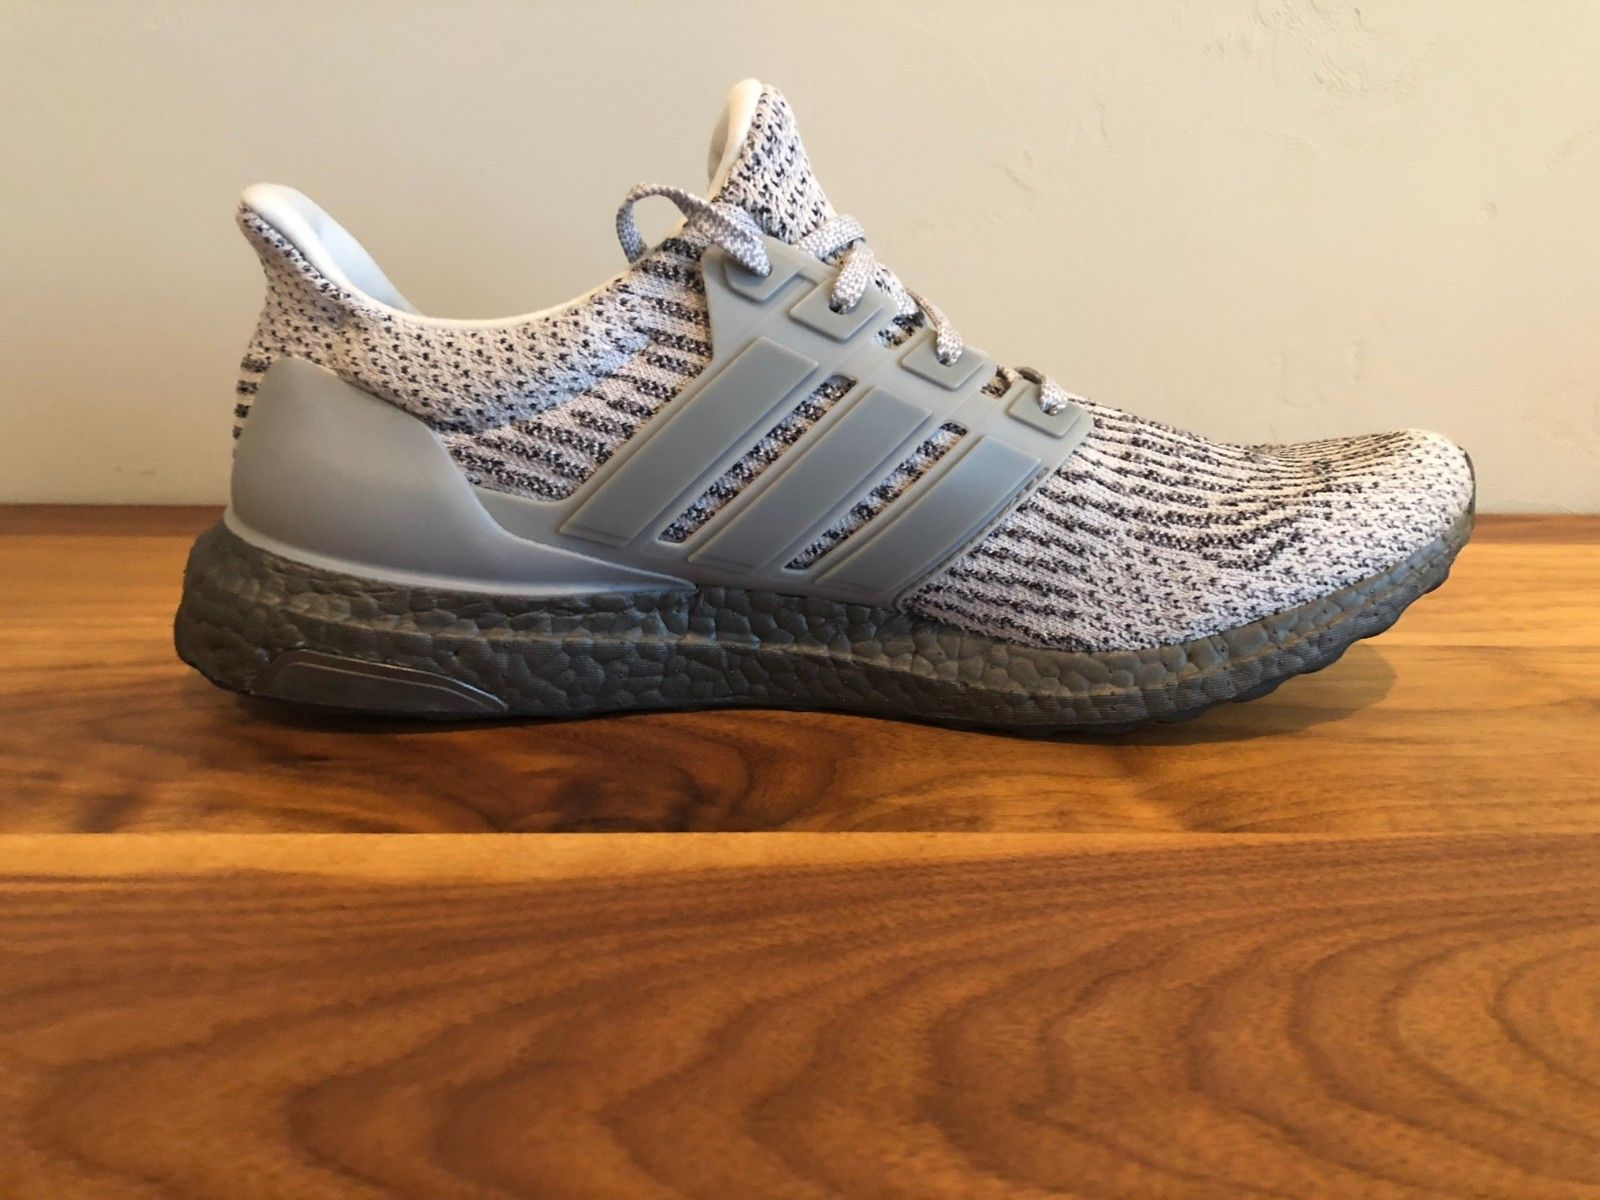 outlet store 3d646 bcc8e Details about ADIDAS ULTRA BOOST 3.0 LTD CG3041 TRIPLE GREY ...